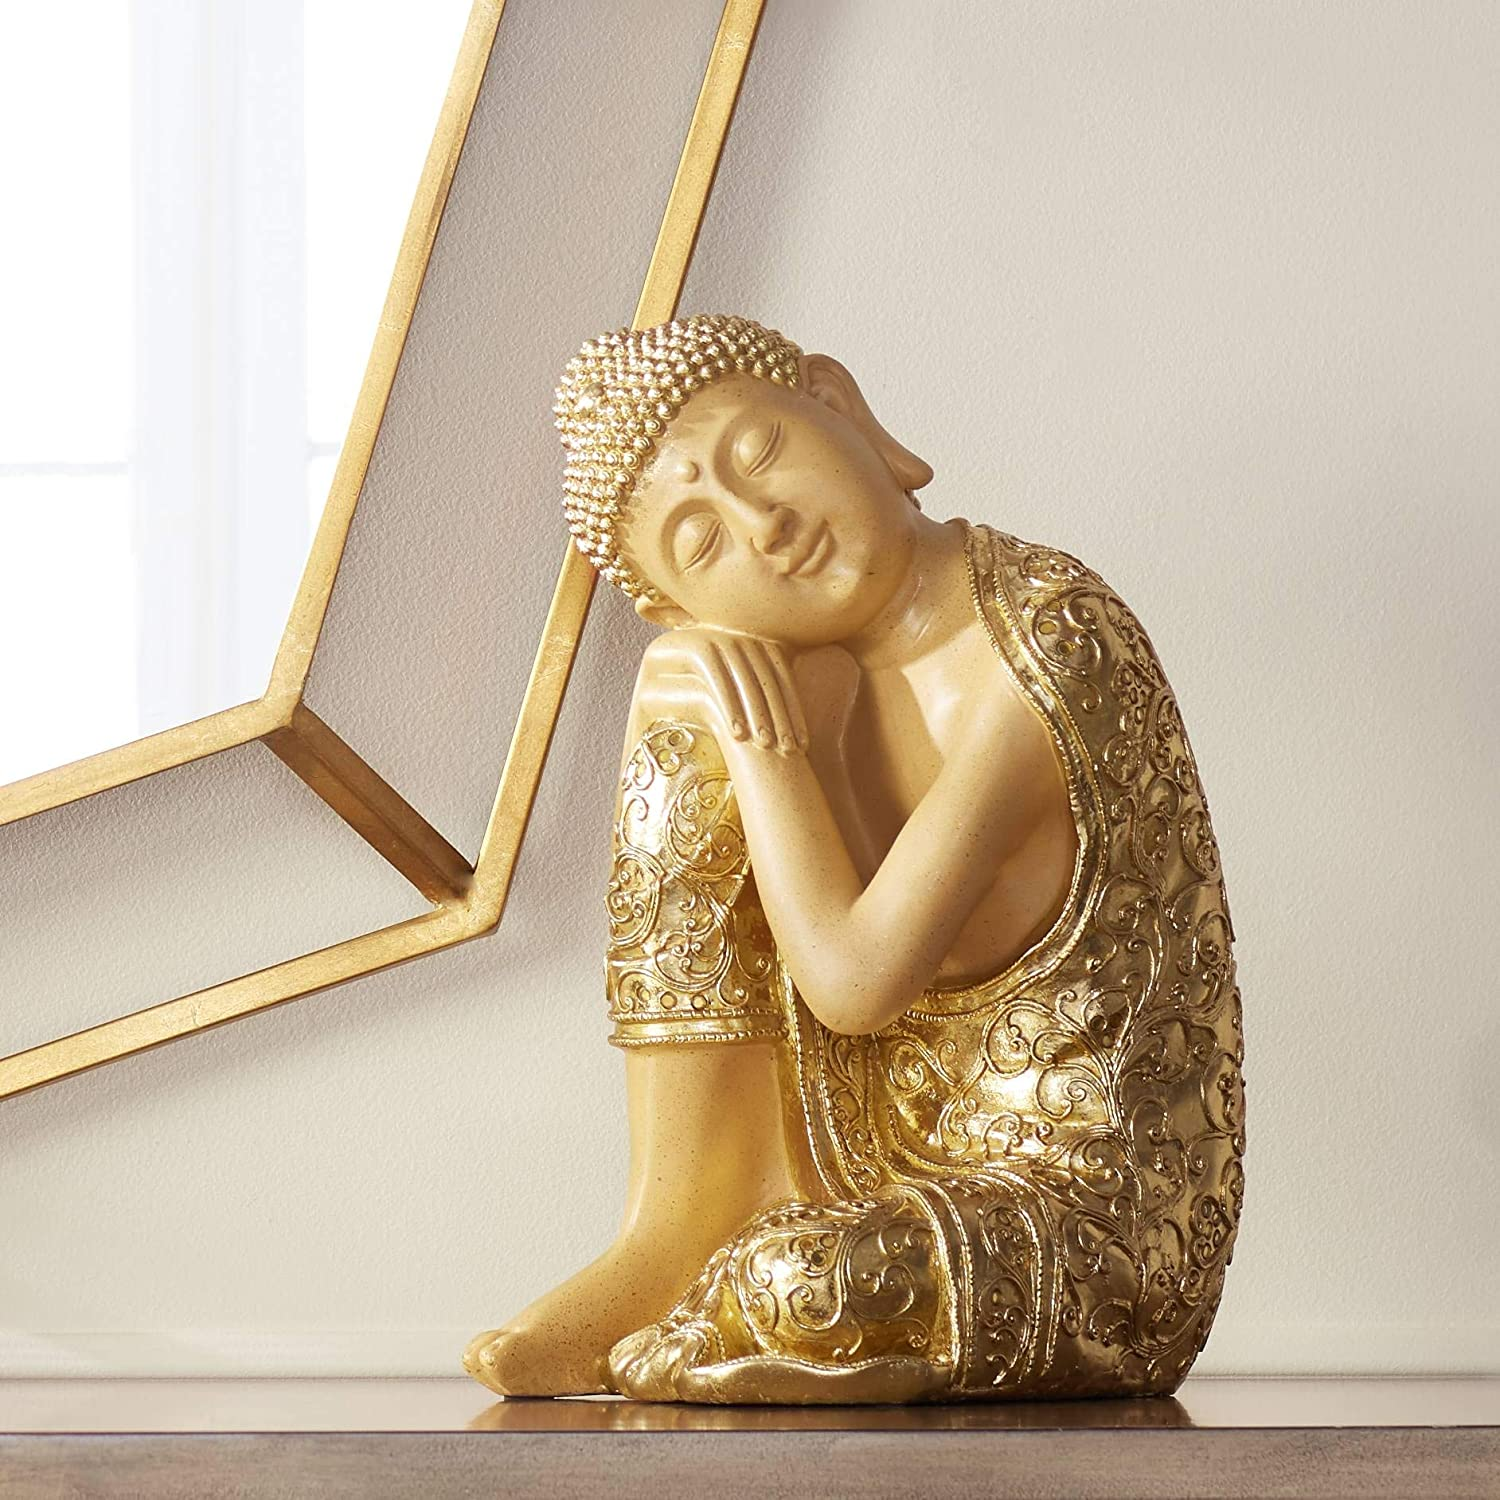 small-buddha-statue-gold-elegant-details-14-inch-height-peaceful-napping-posture-unique-gift-idea-for-buddhists